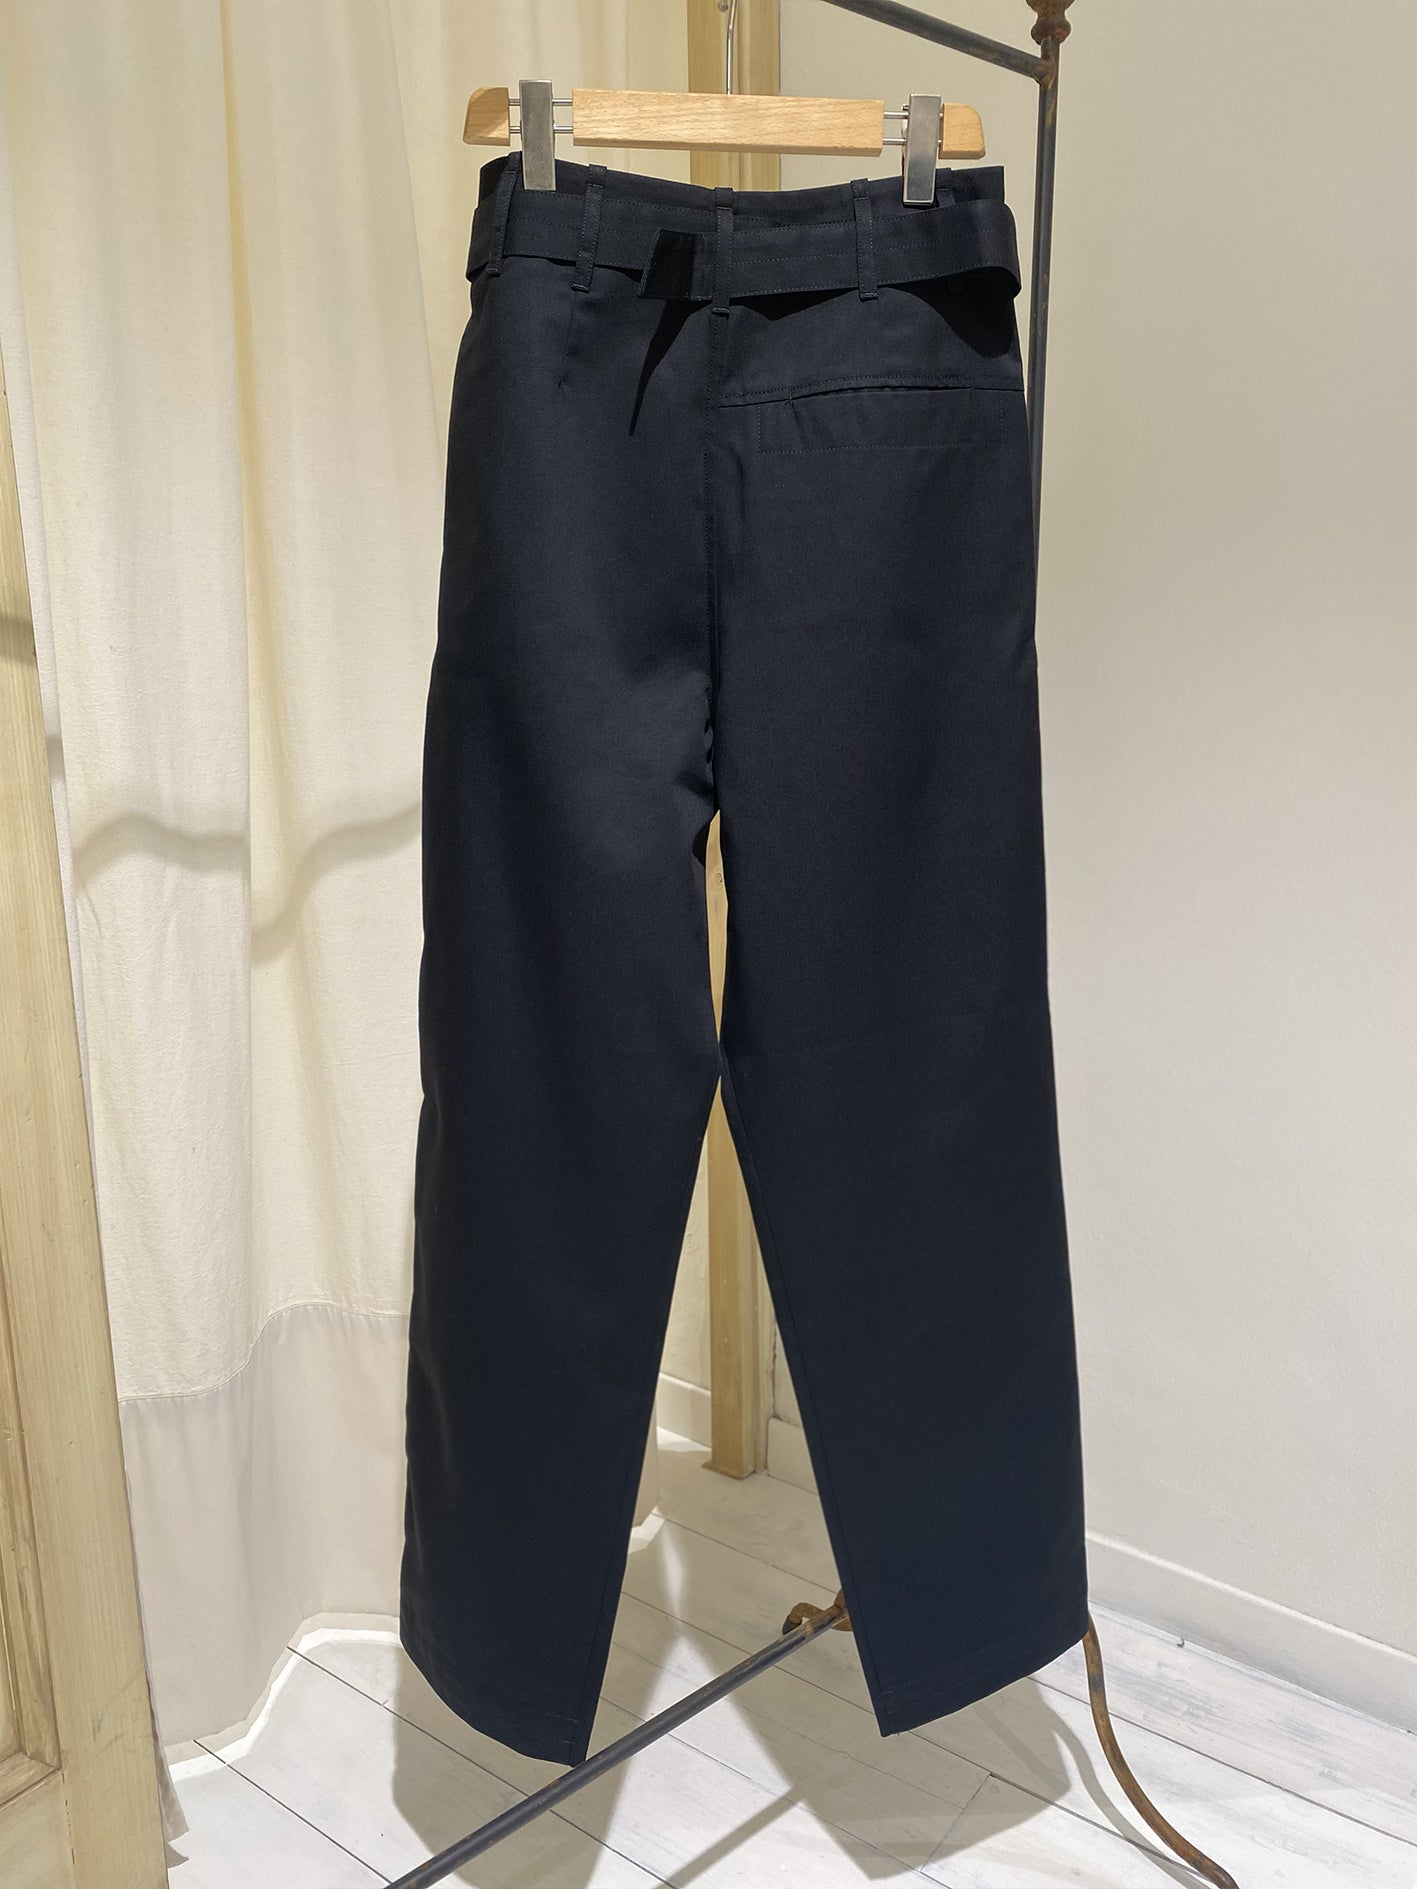 W Pant COVERT - Black